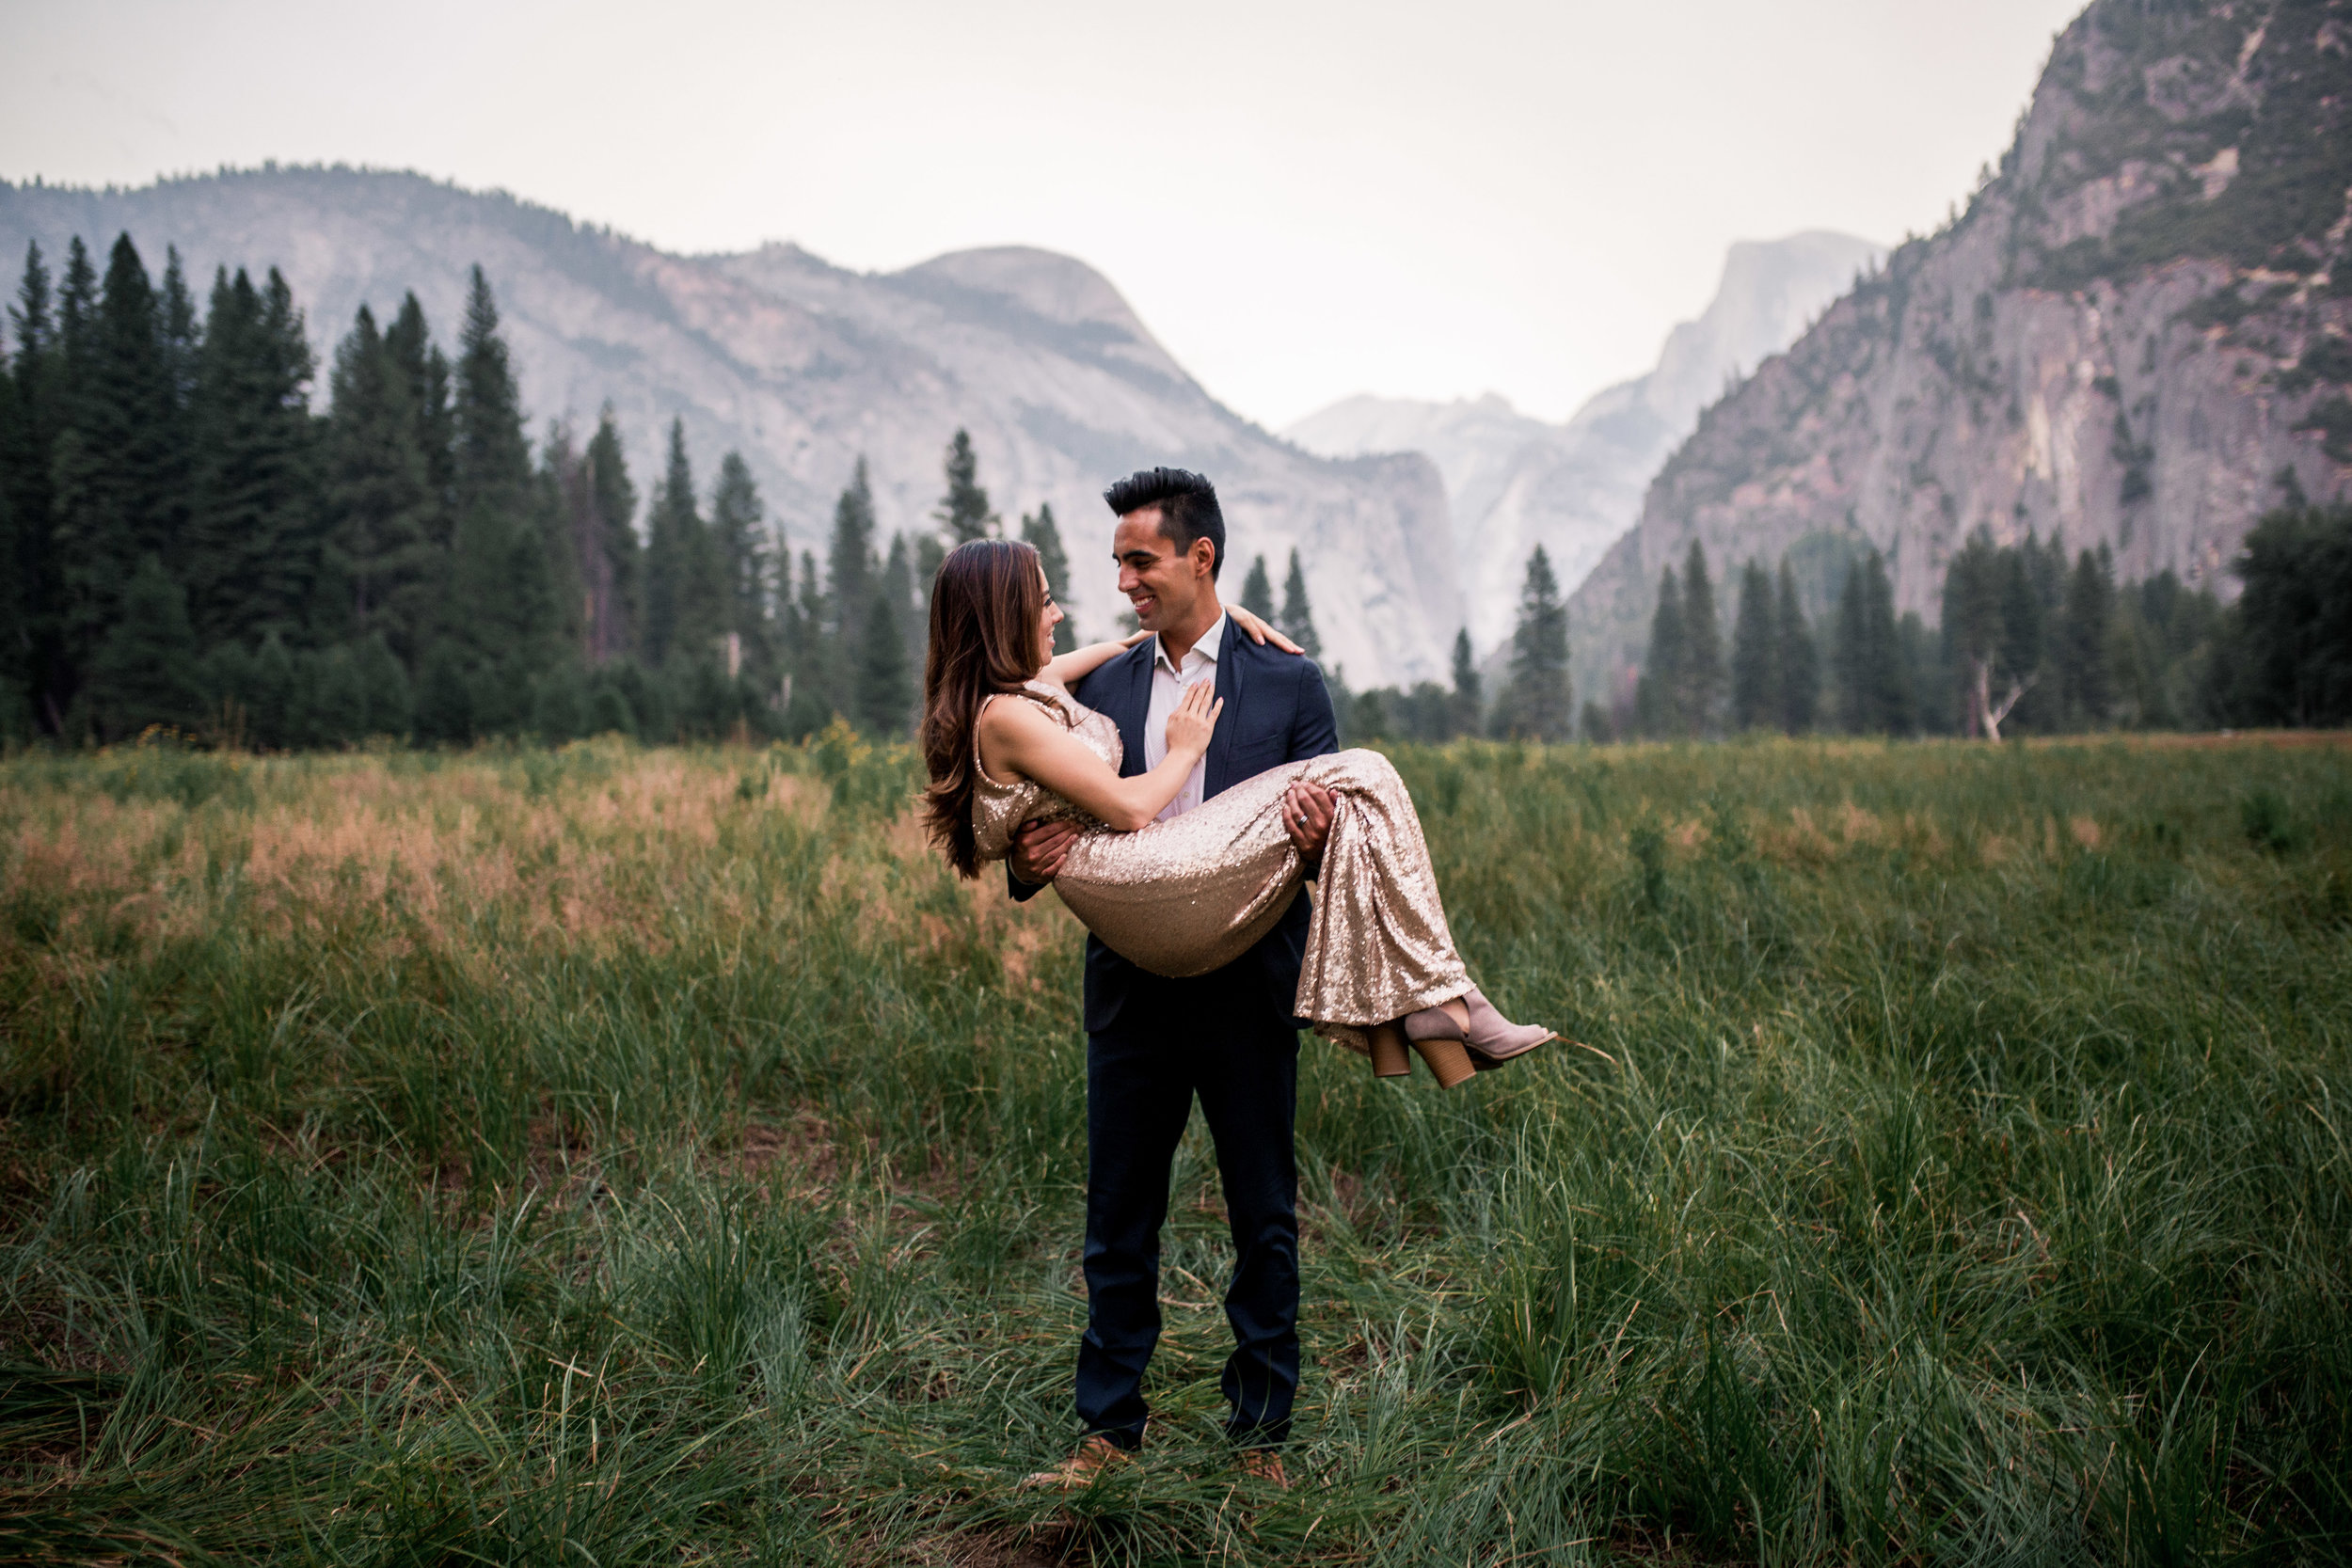 nicole-daacke-photography-yosemite-national-park-adventurous-engagement-session-half-dome-engagement-session-anniversary-photographer-yosemite-elopement-photographer-yosemite-intimate-wedding-photography-49.jpg